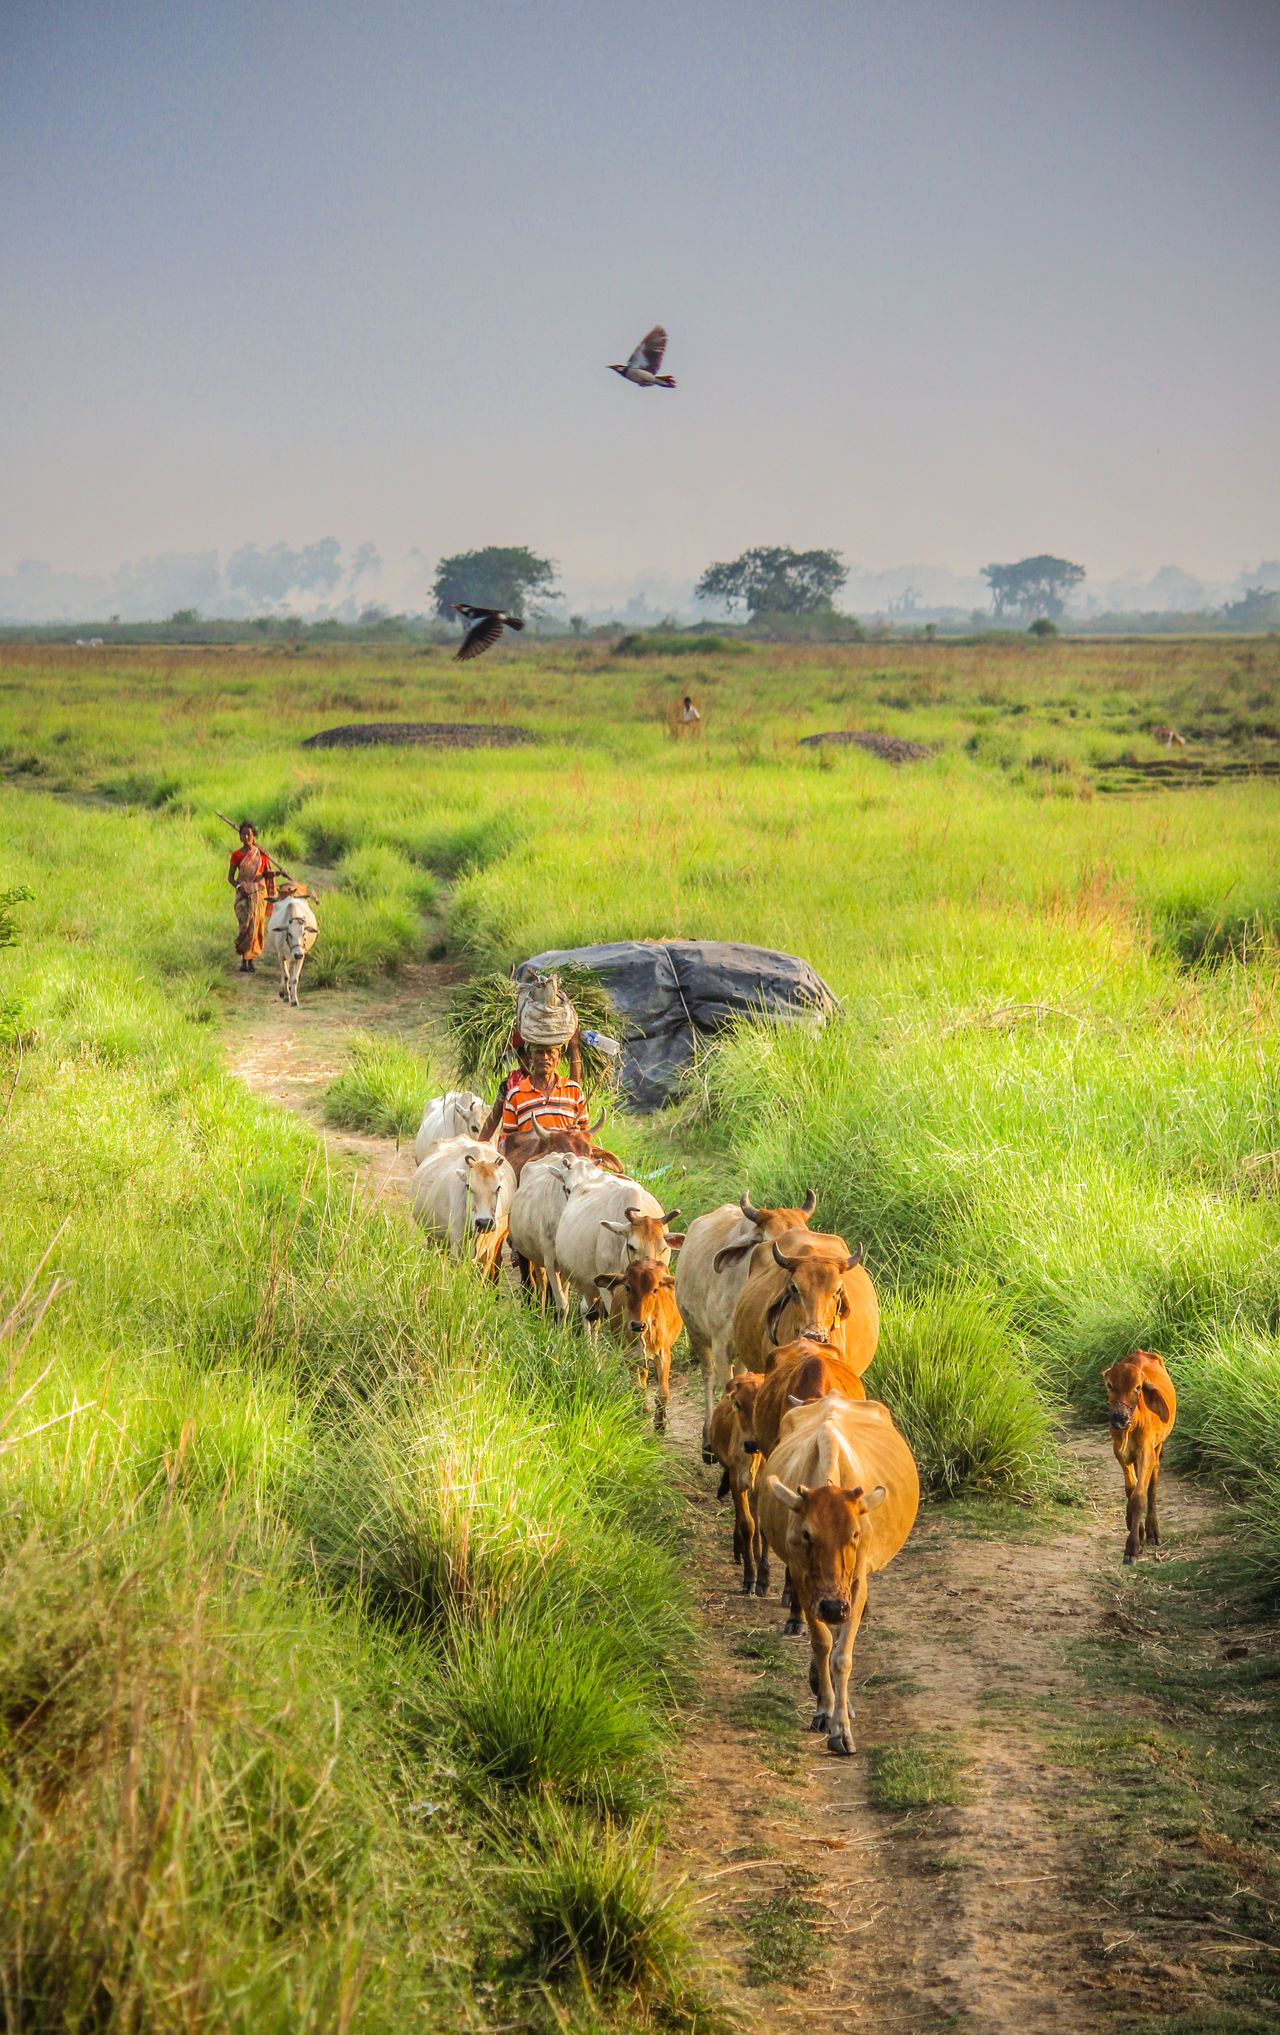 Dawn Field Agriculture Grass Outdoors Nature Landscape Animal Themes The Week On EyeEem Canon700D Live For The Story Canon_official Canonphotography The Great Outdoors - 2017 EyeEm Awards Domestic Animals Rice Paddy Day Working No People Mammal Bird Sky The Photojournalist - 2017 EyeEm Awards